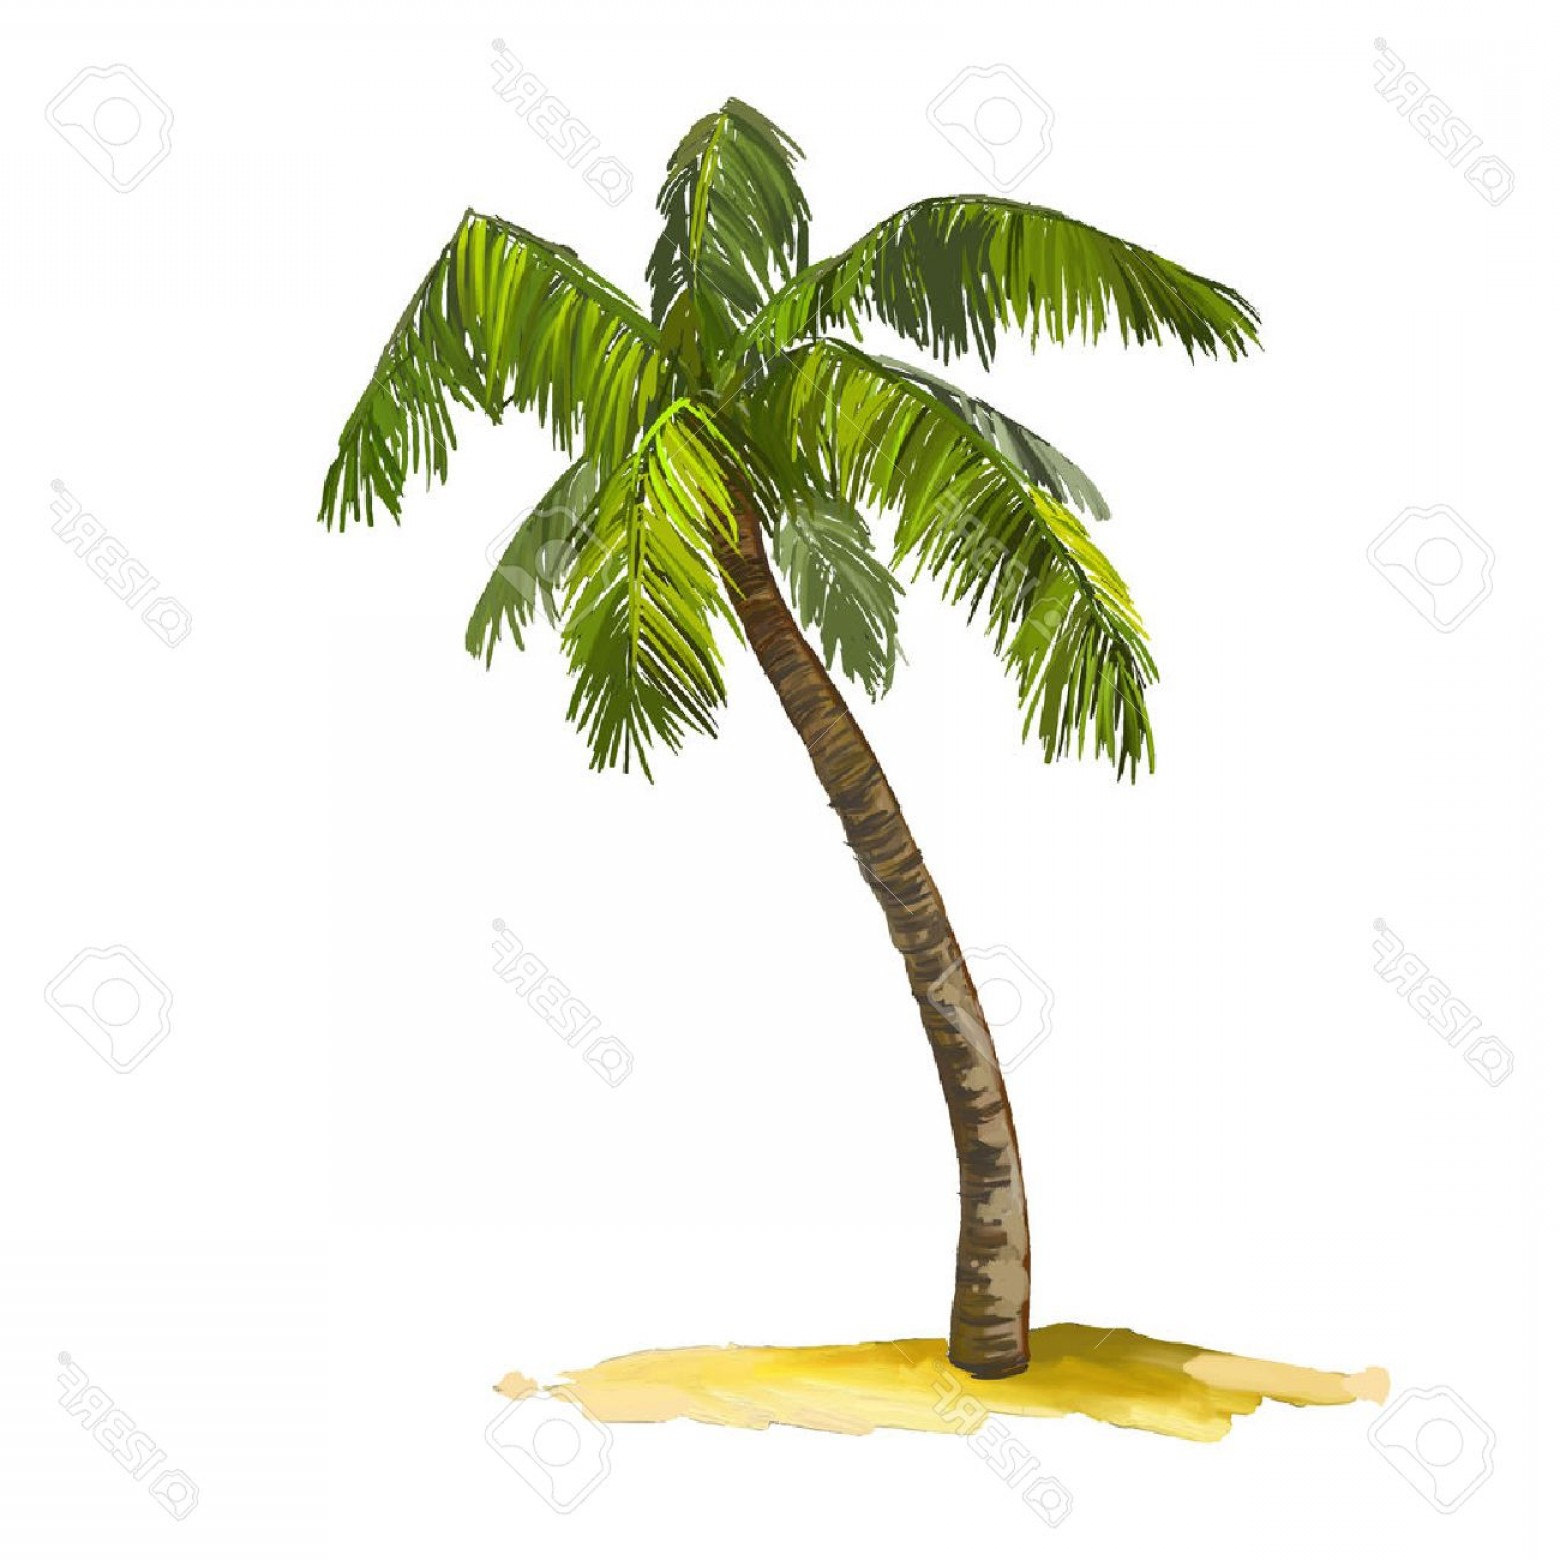 Watercolor Palm Tree Vector: Photostock Vector Palm Tree Vector Illustration Hand Drawn Painted Watercolor